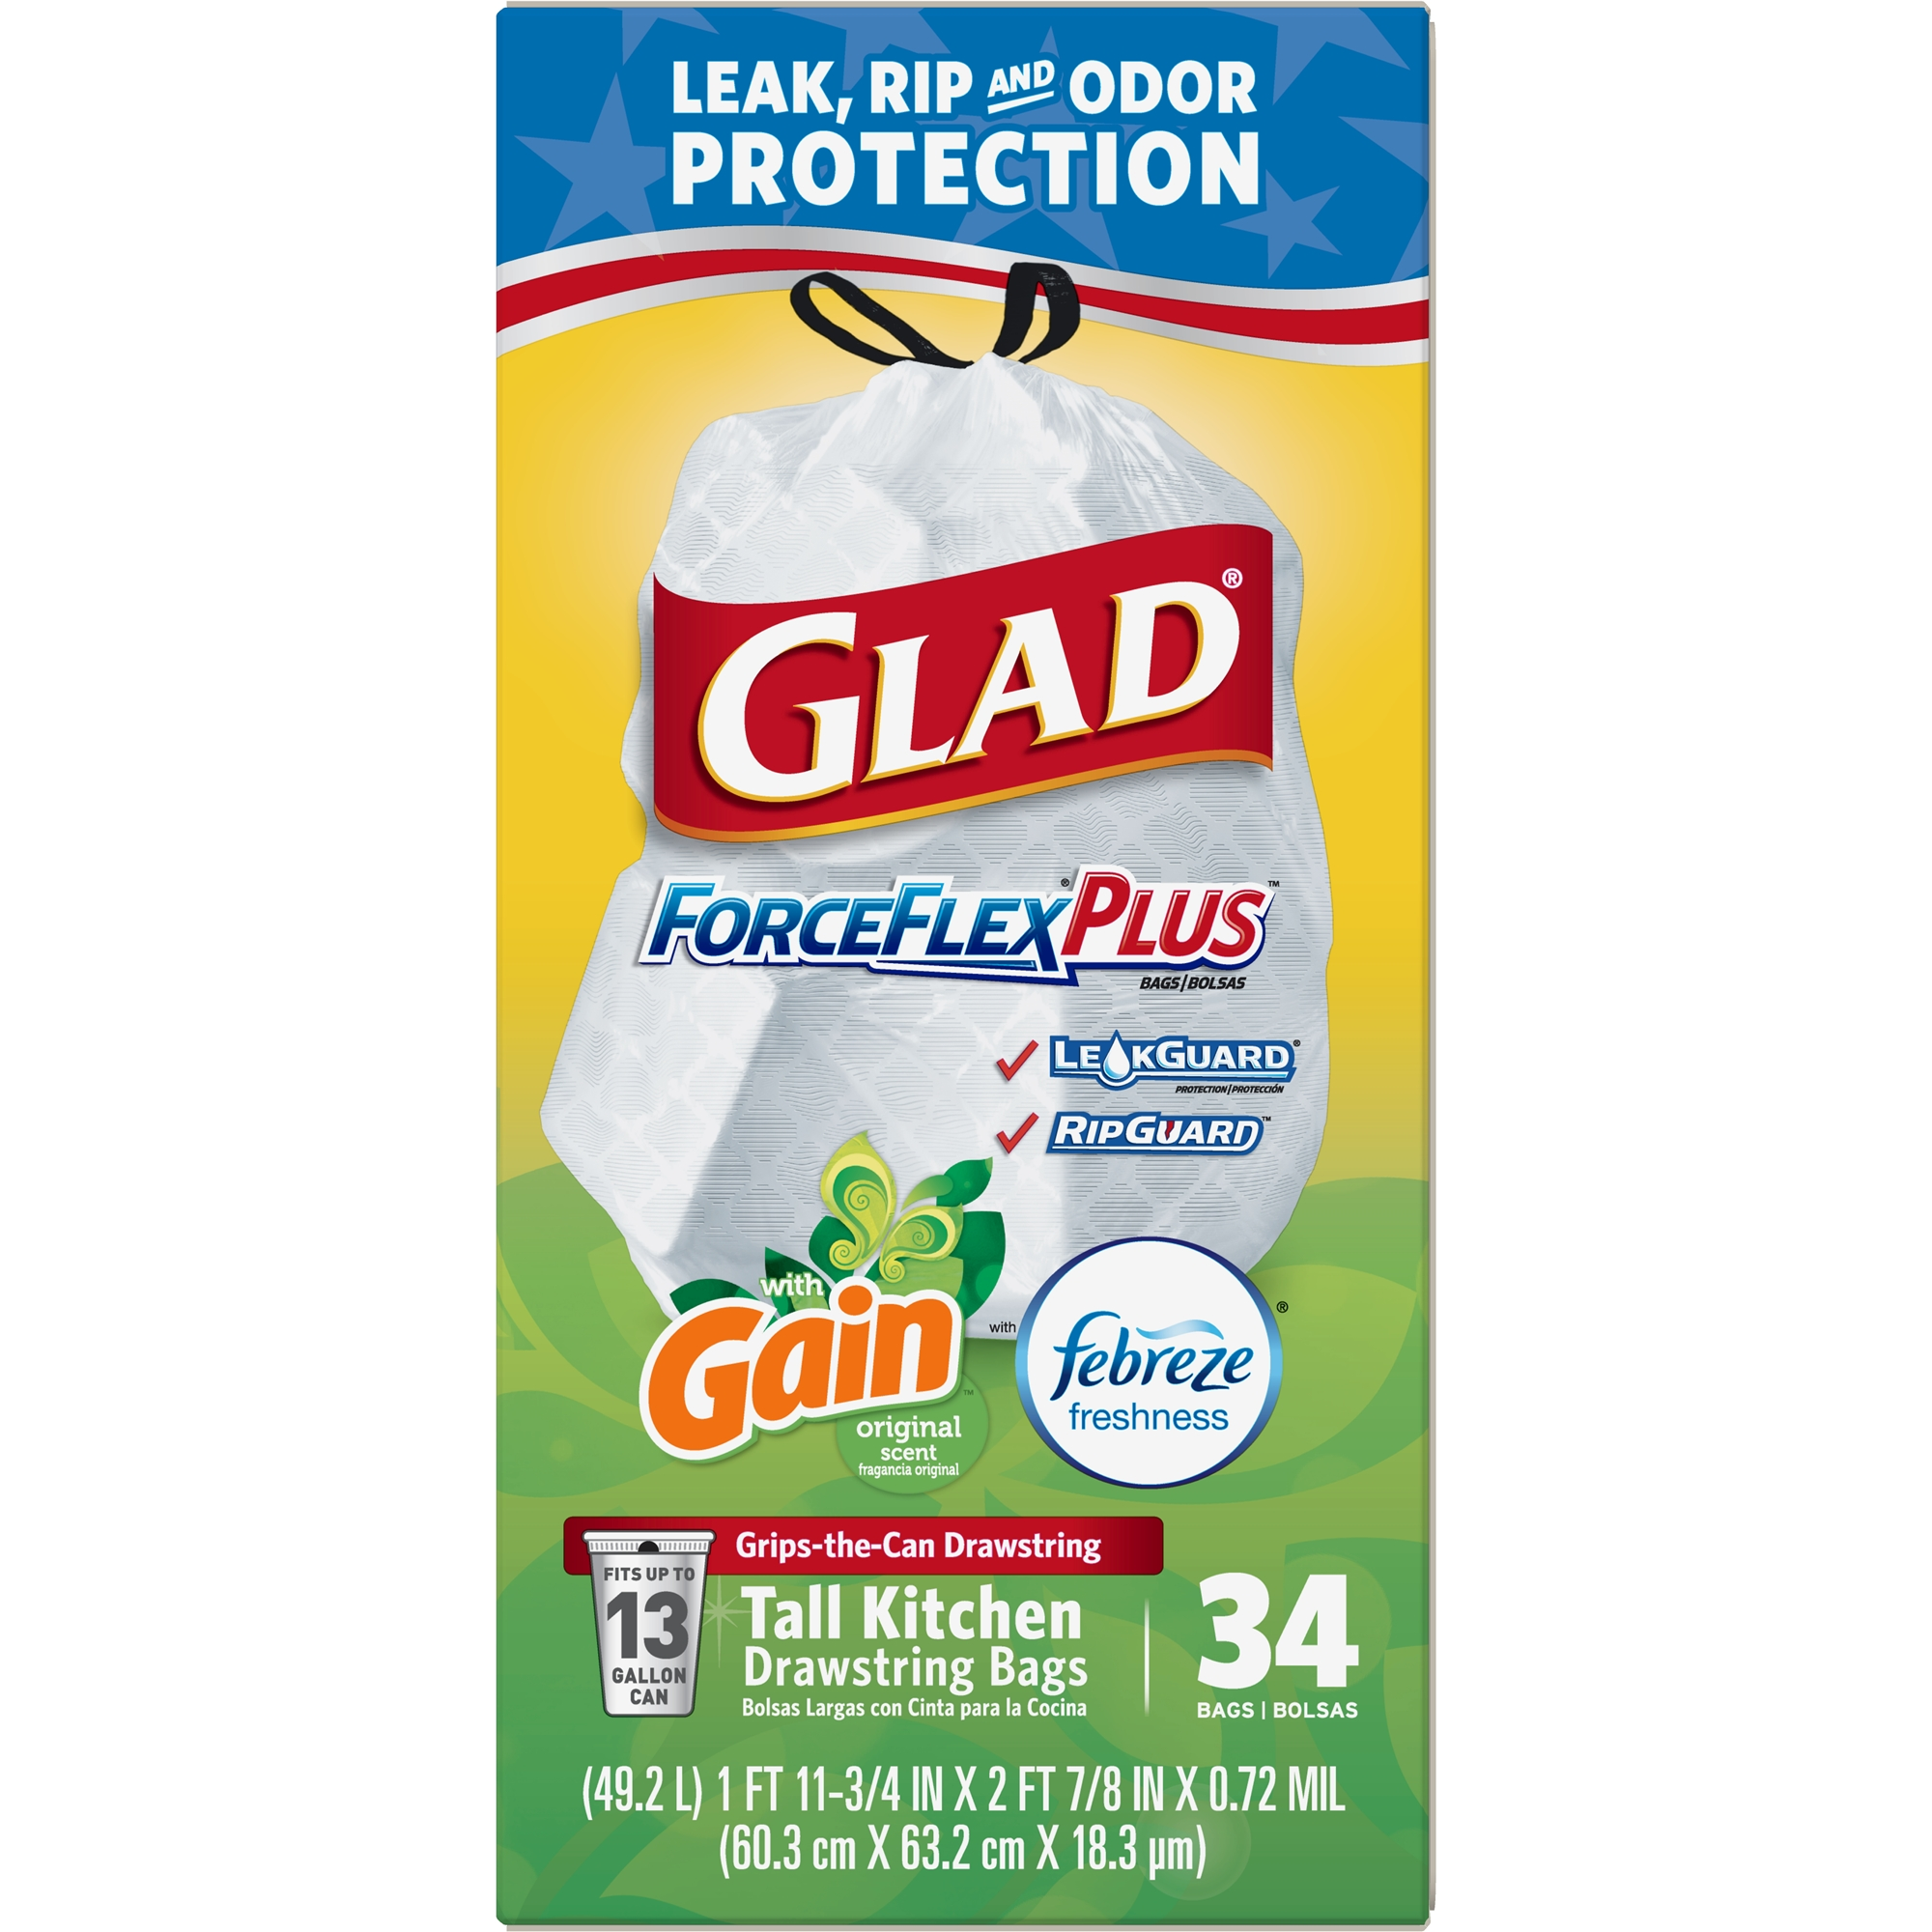 Glad ForceFlexPlus Tall Kitchen Drawstring Trash Bags - Gain Original with Febreze Freshness - 13 Gallon - 34 ct